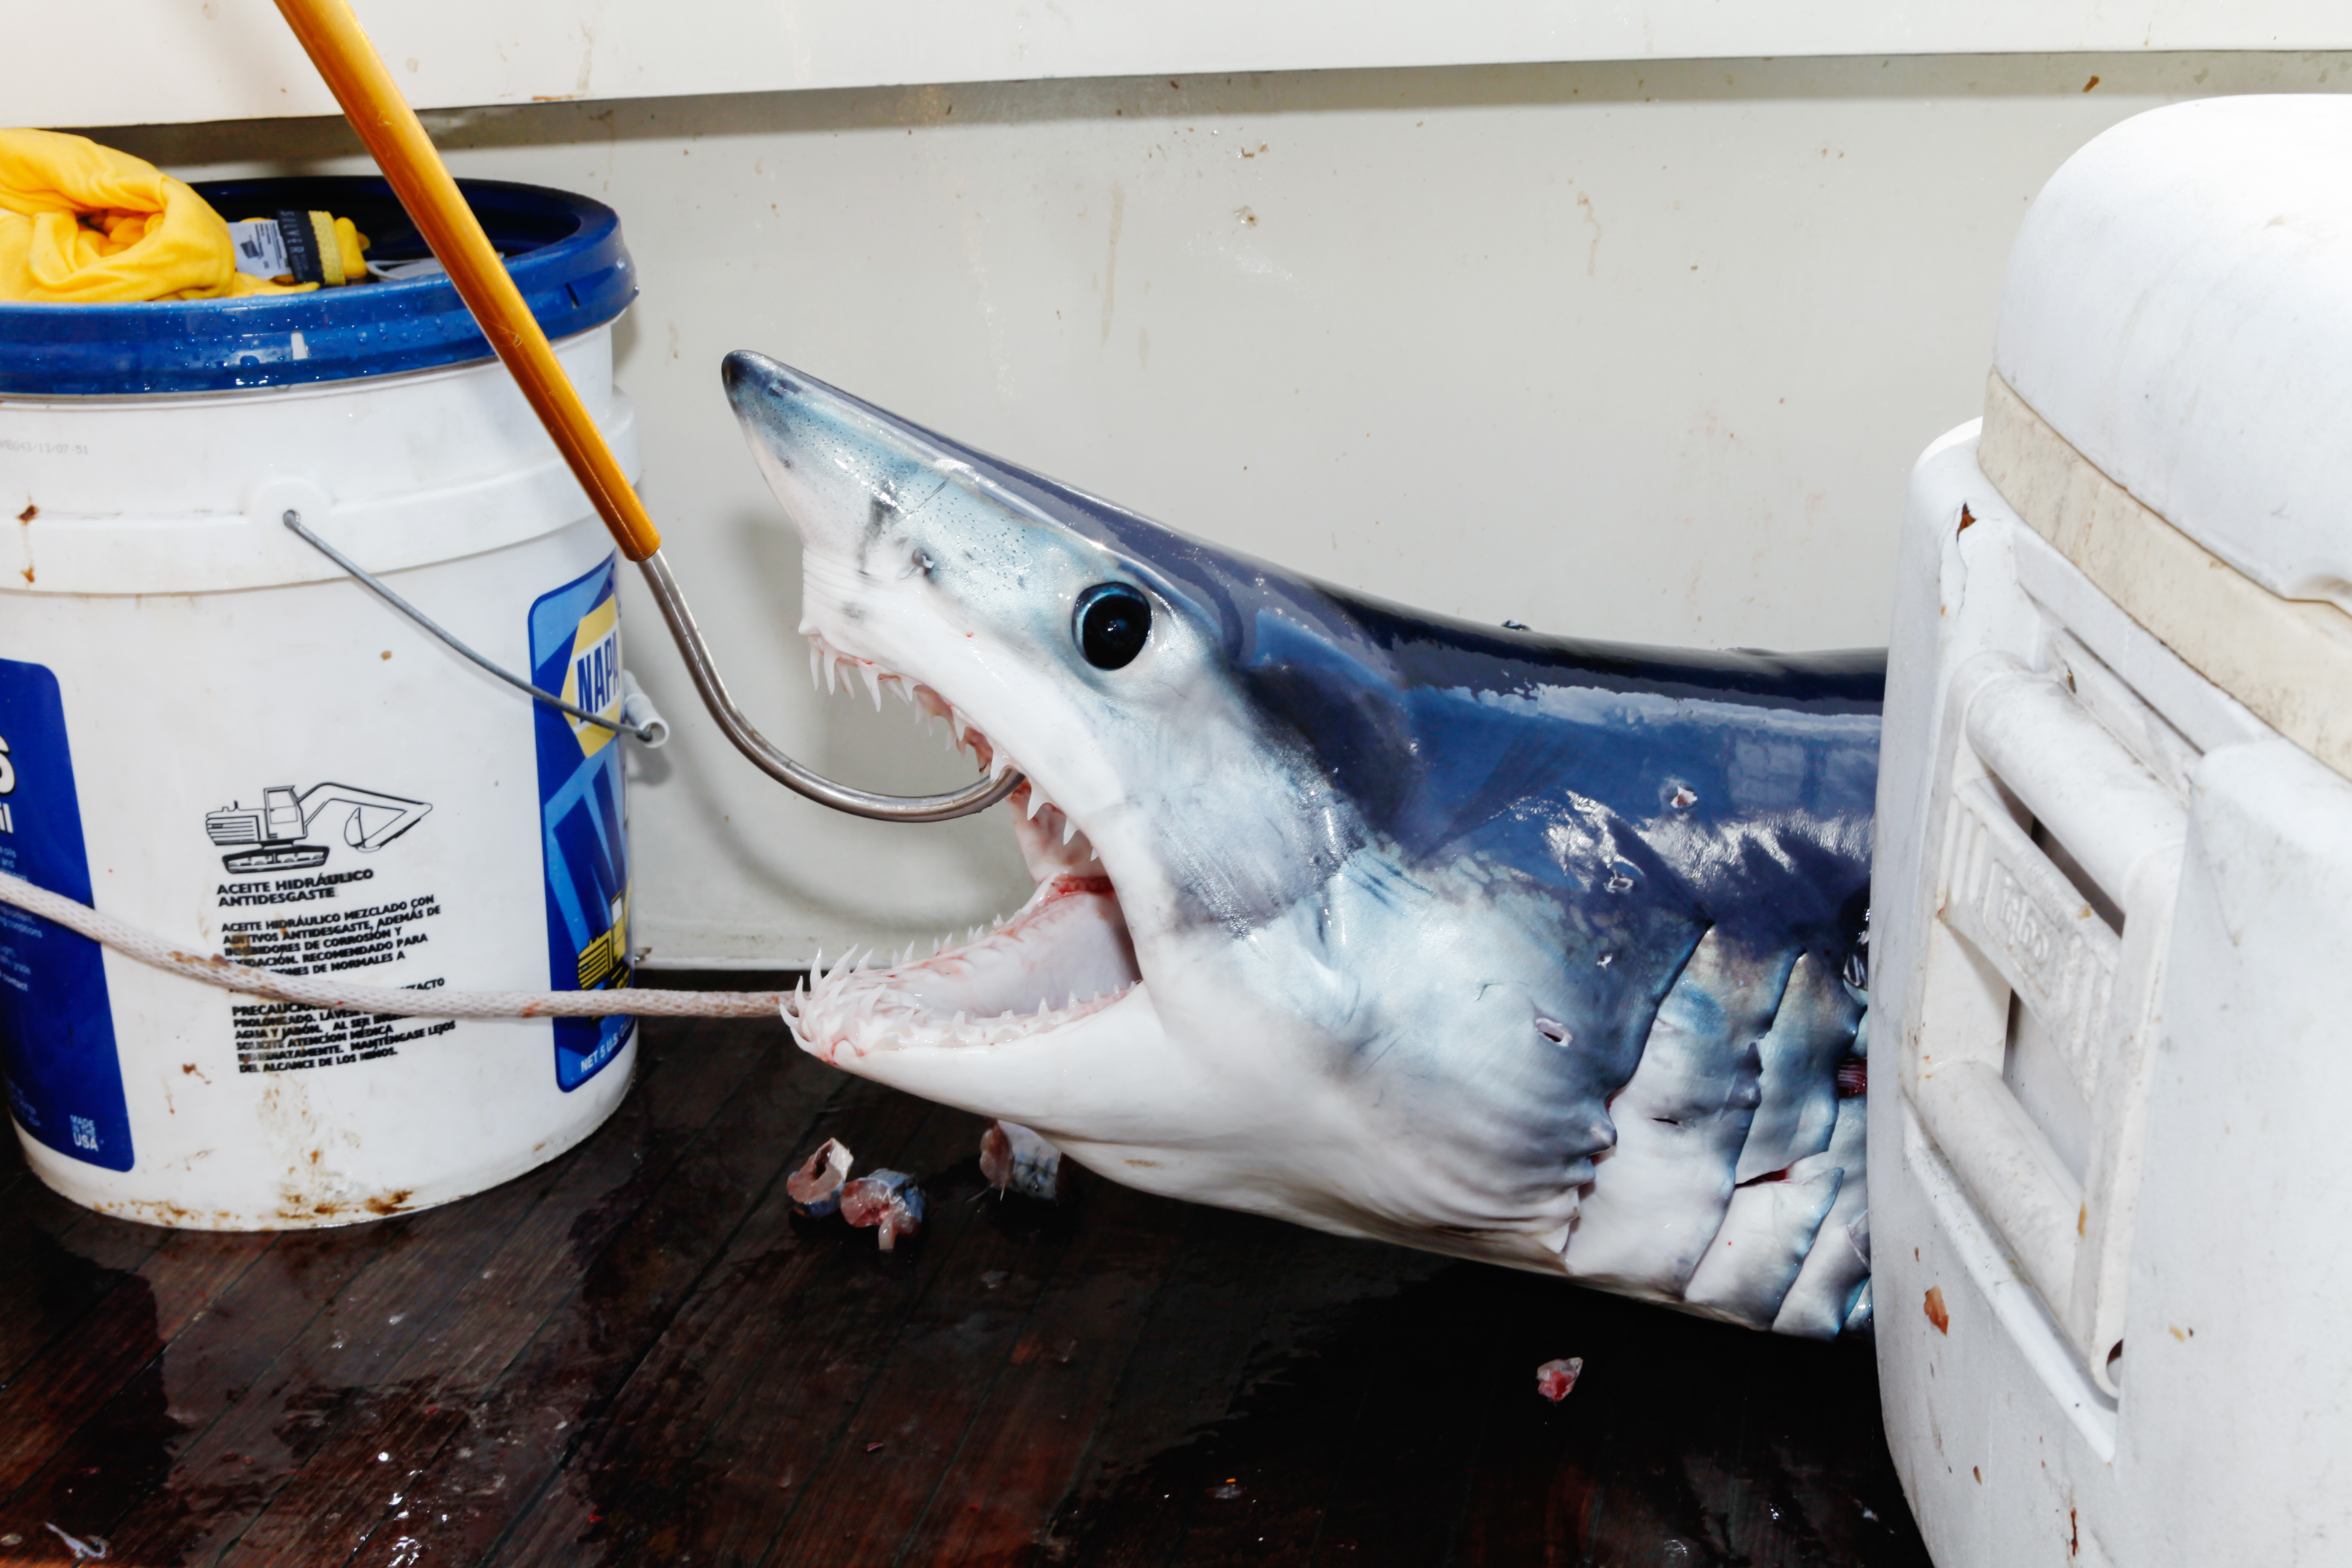 The final catch! A Mako shark, not big enough to bring into the weigh-in for the tournament but big enough to eat.